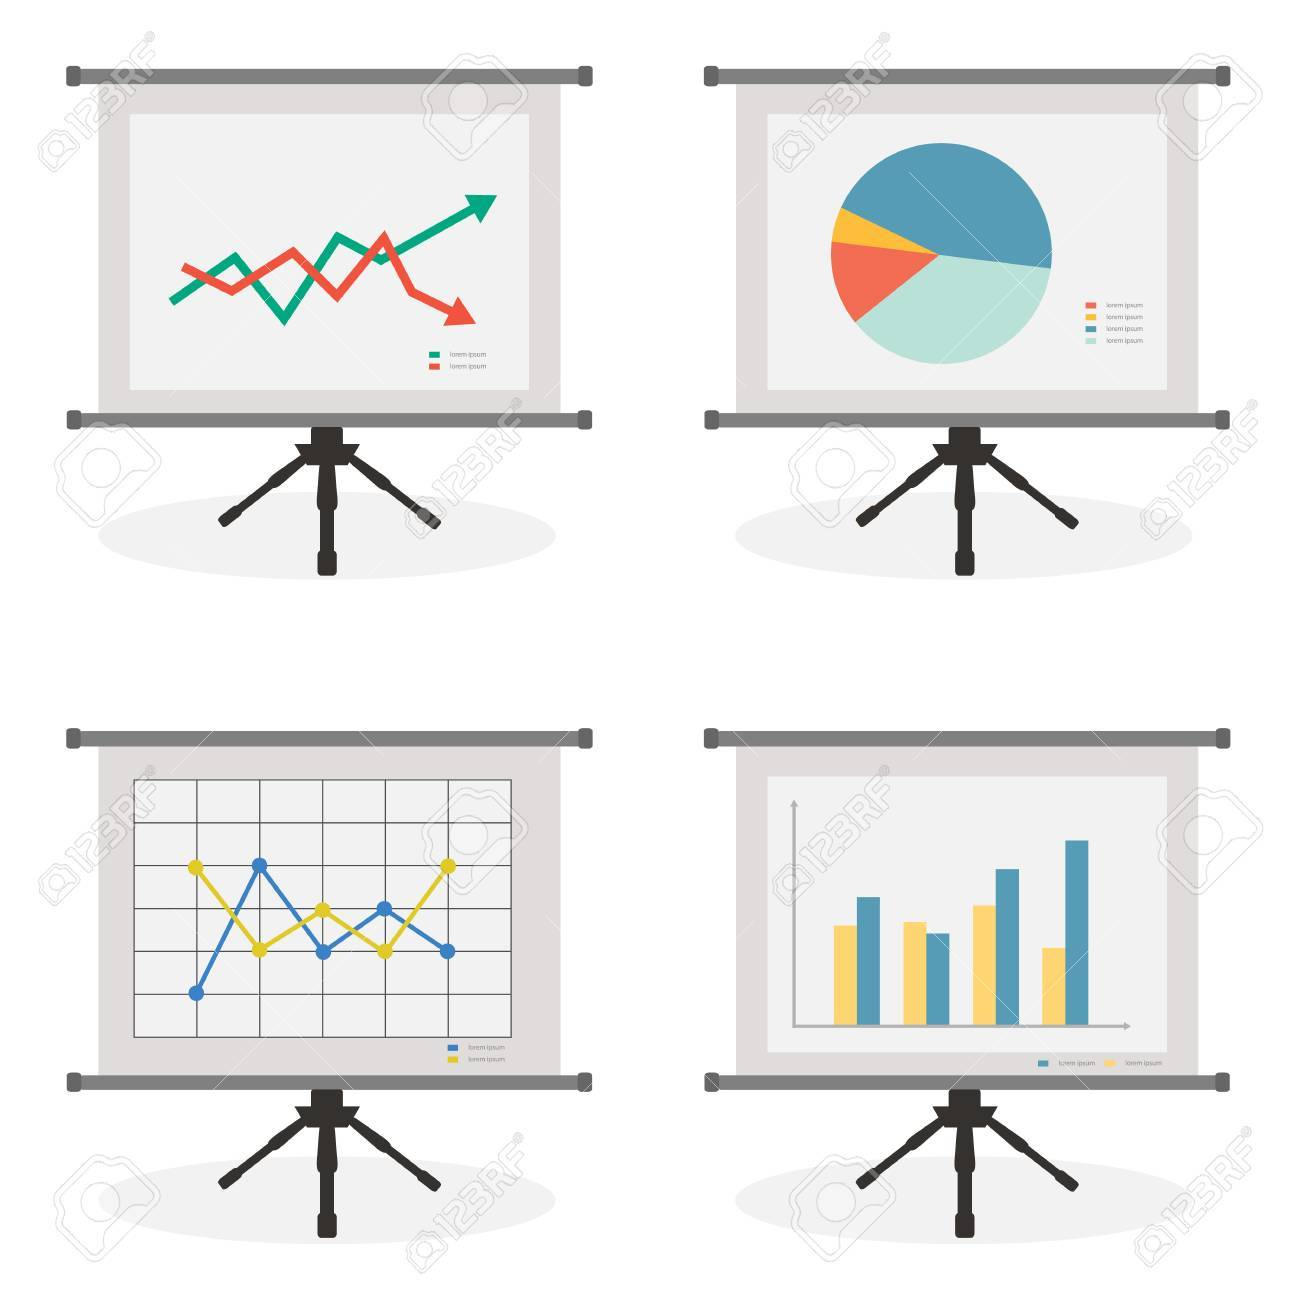 Presentation Screen With Stock, Pie, Line And Bar Chart For ...